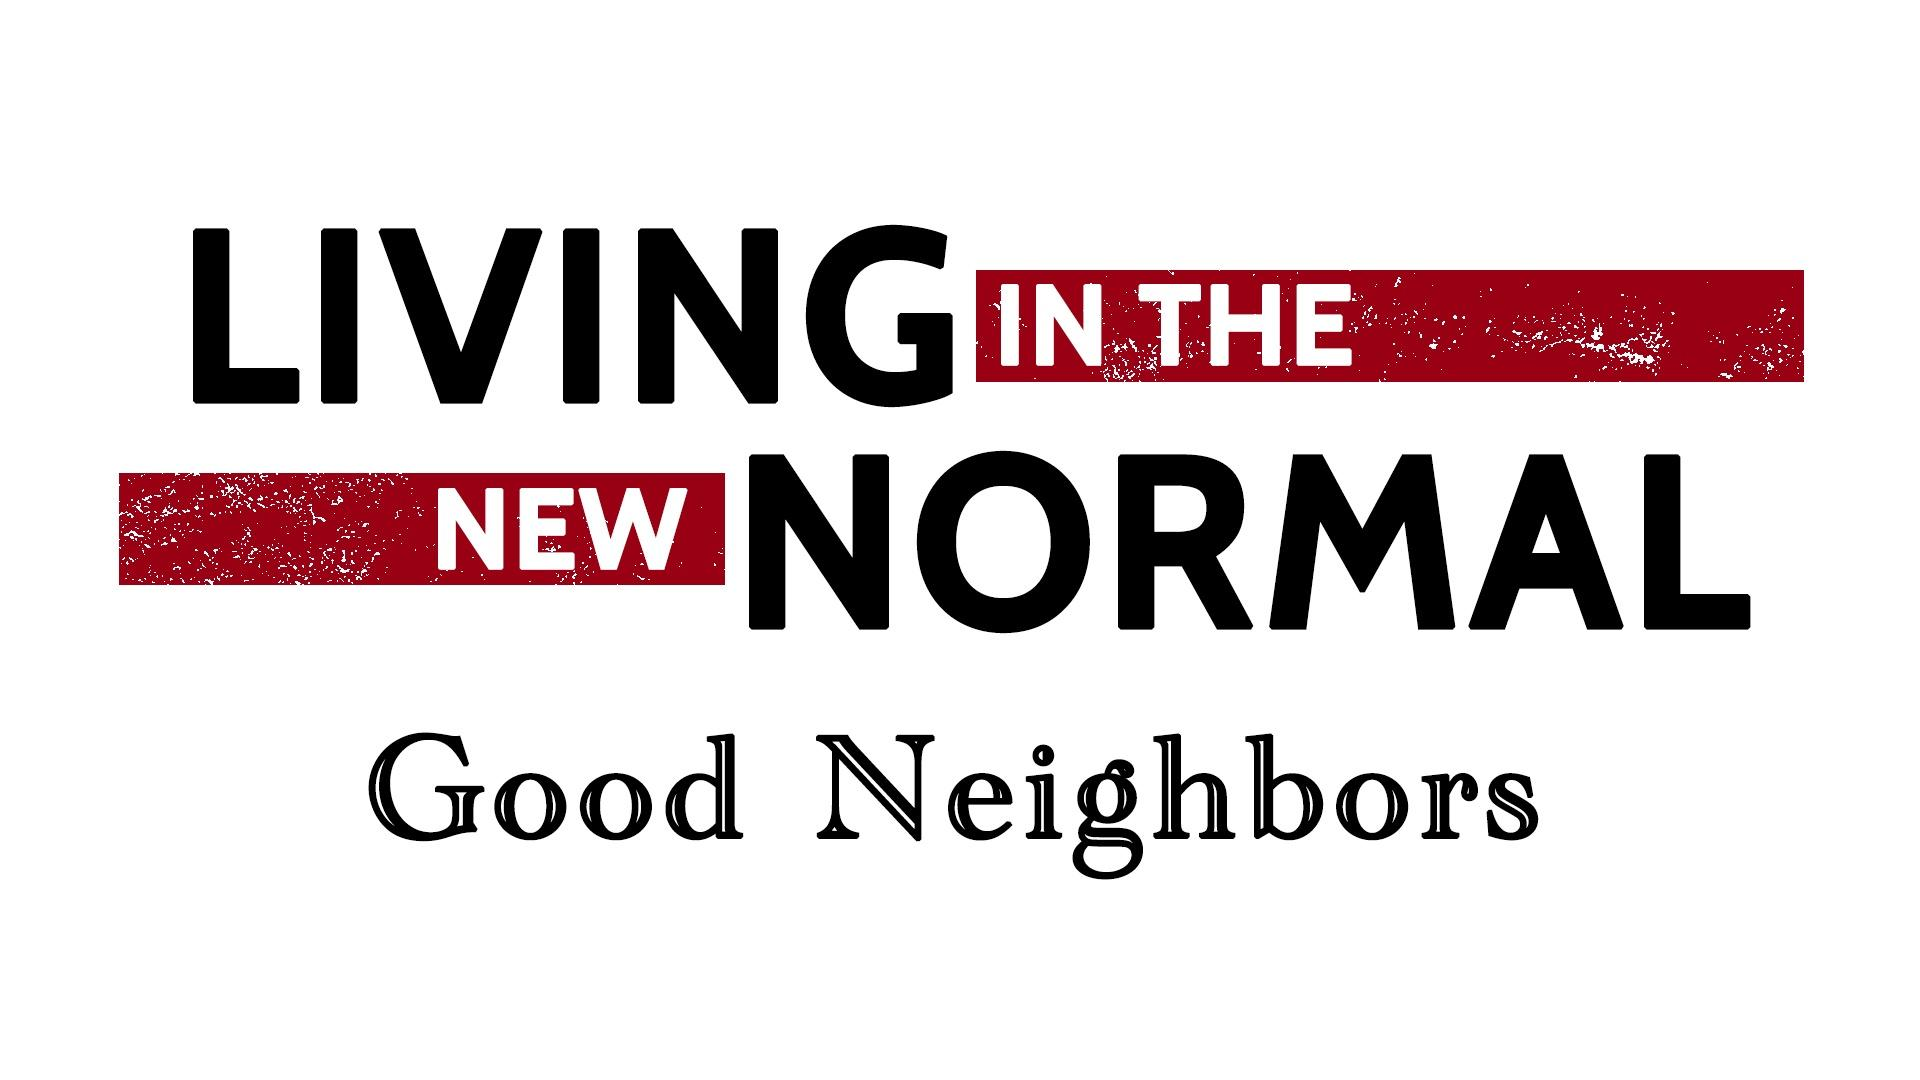 Living in the New Normal: Good Neighbors